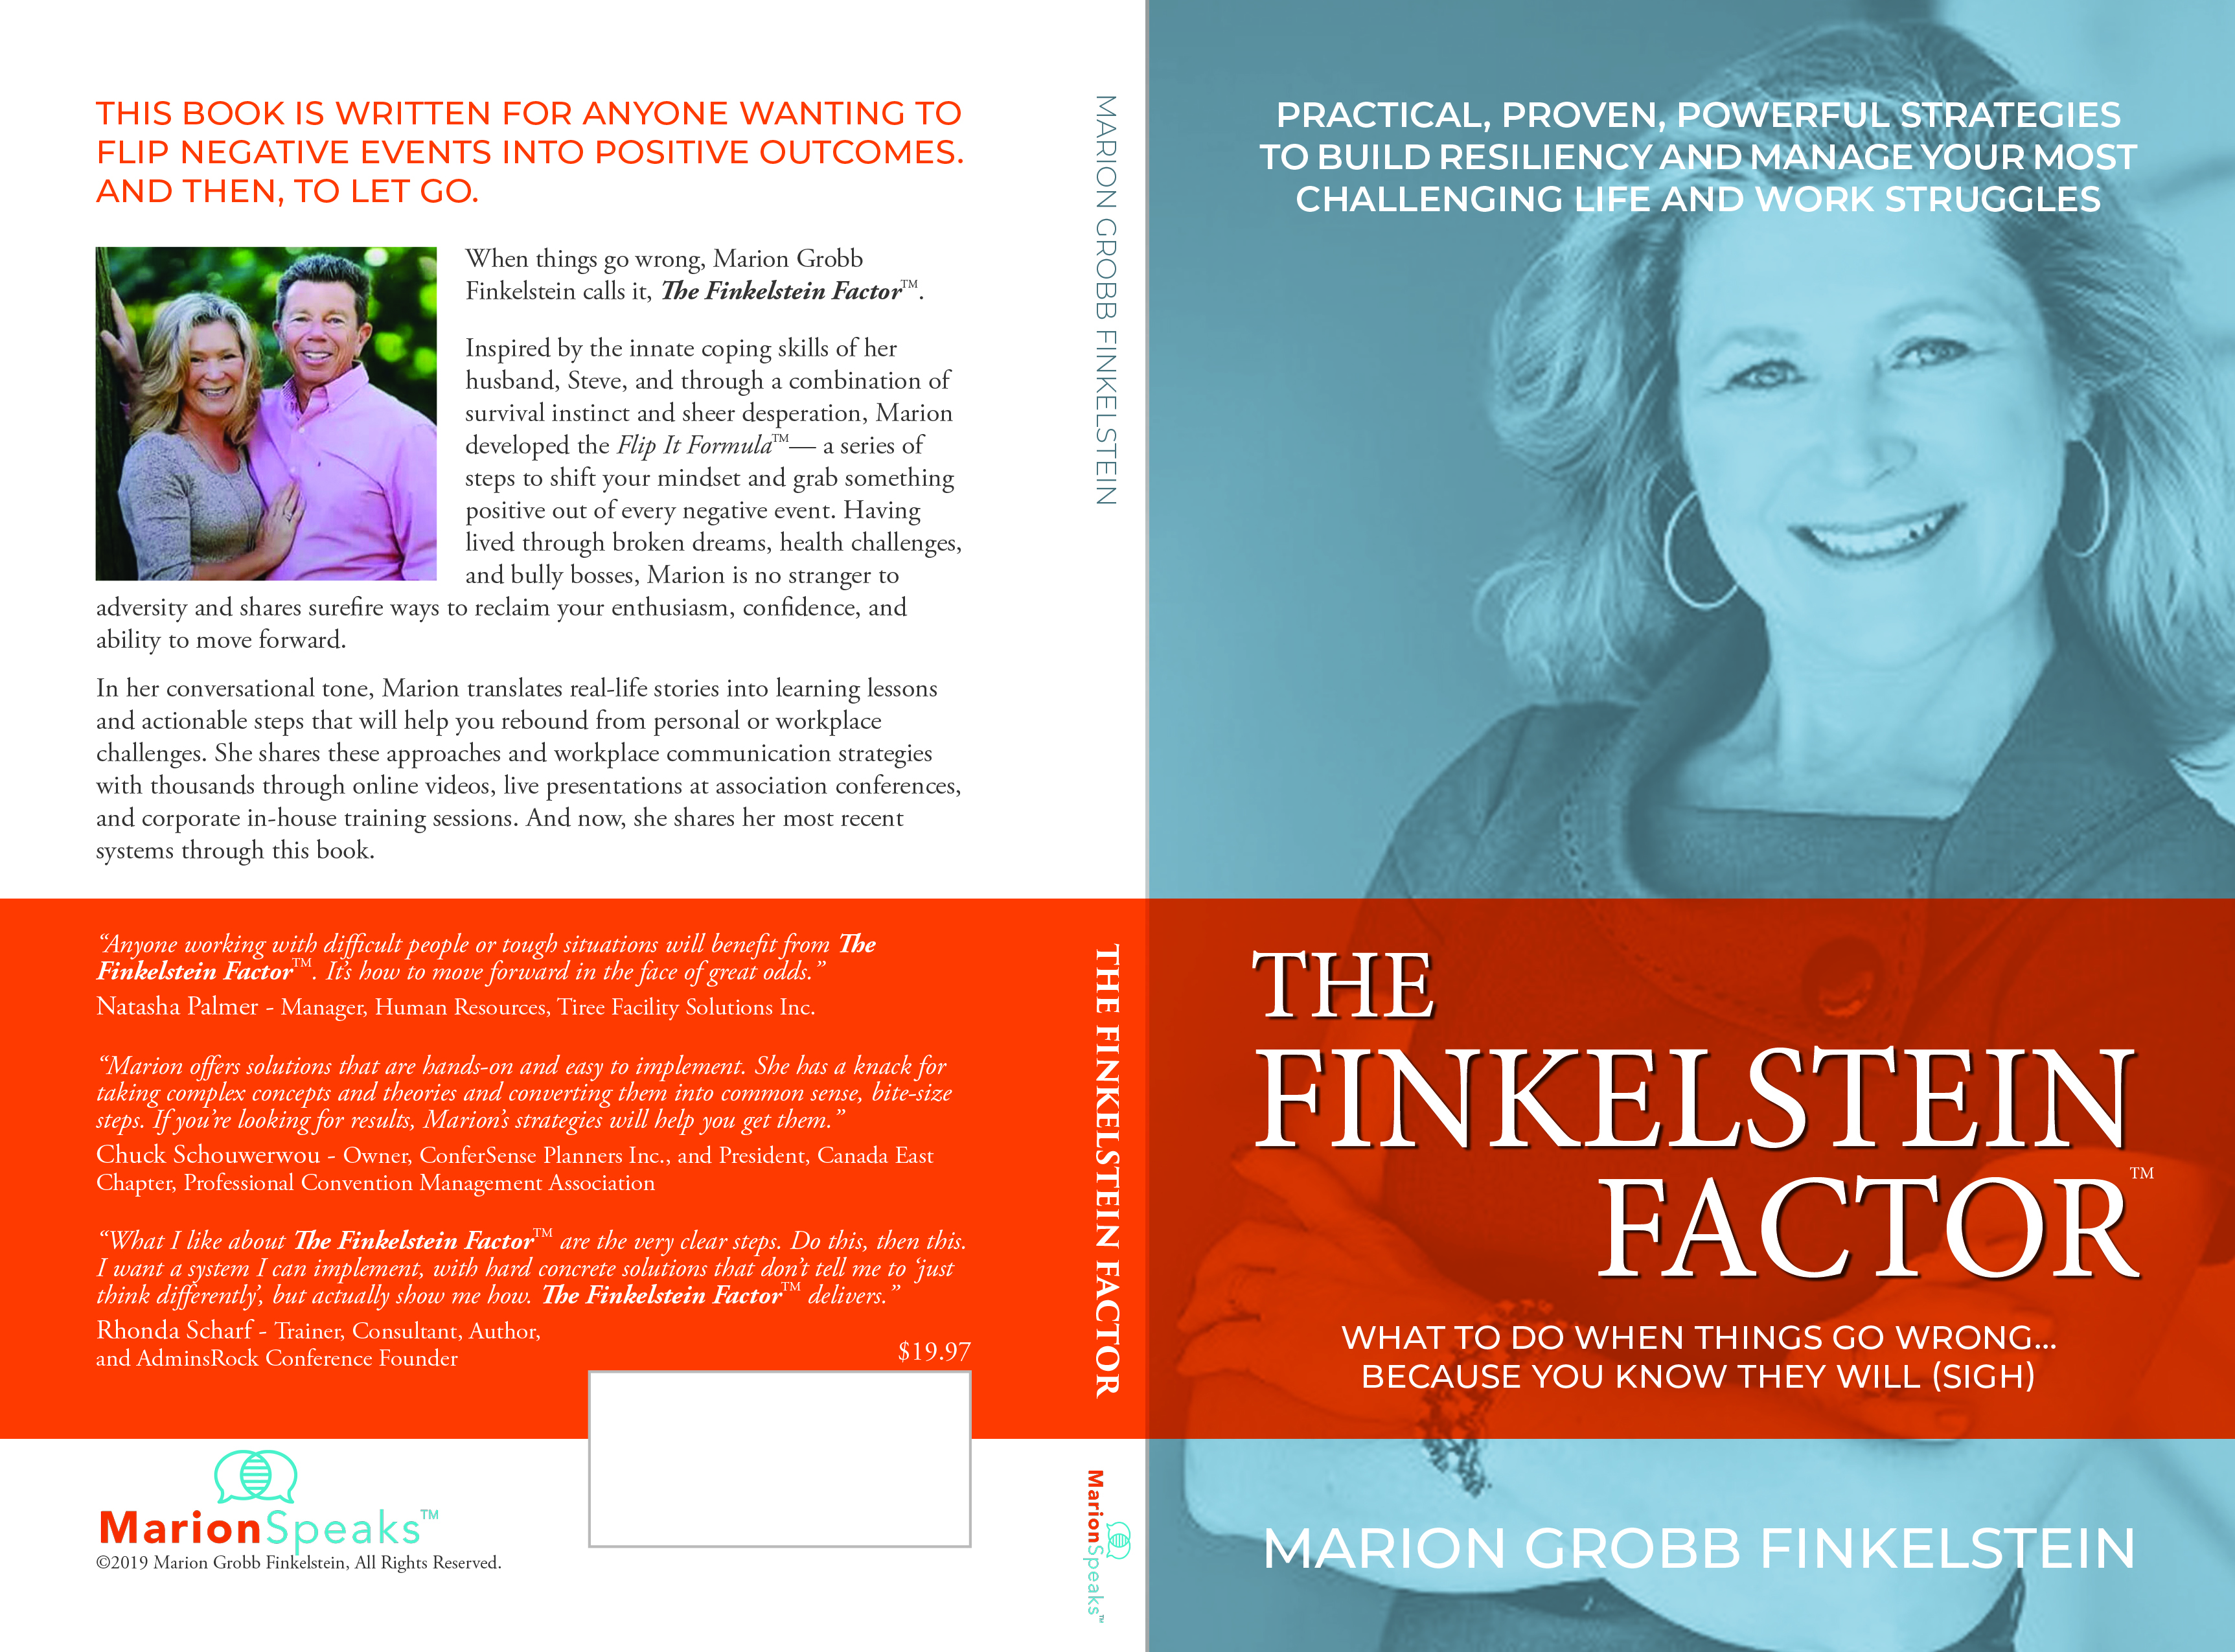 FINKELSTEIN_FACTOR_COVERV2